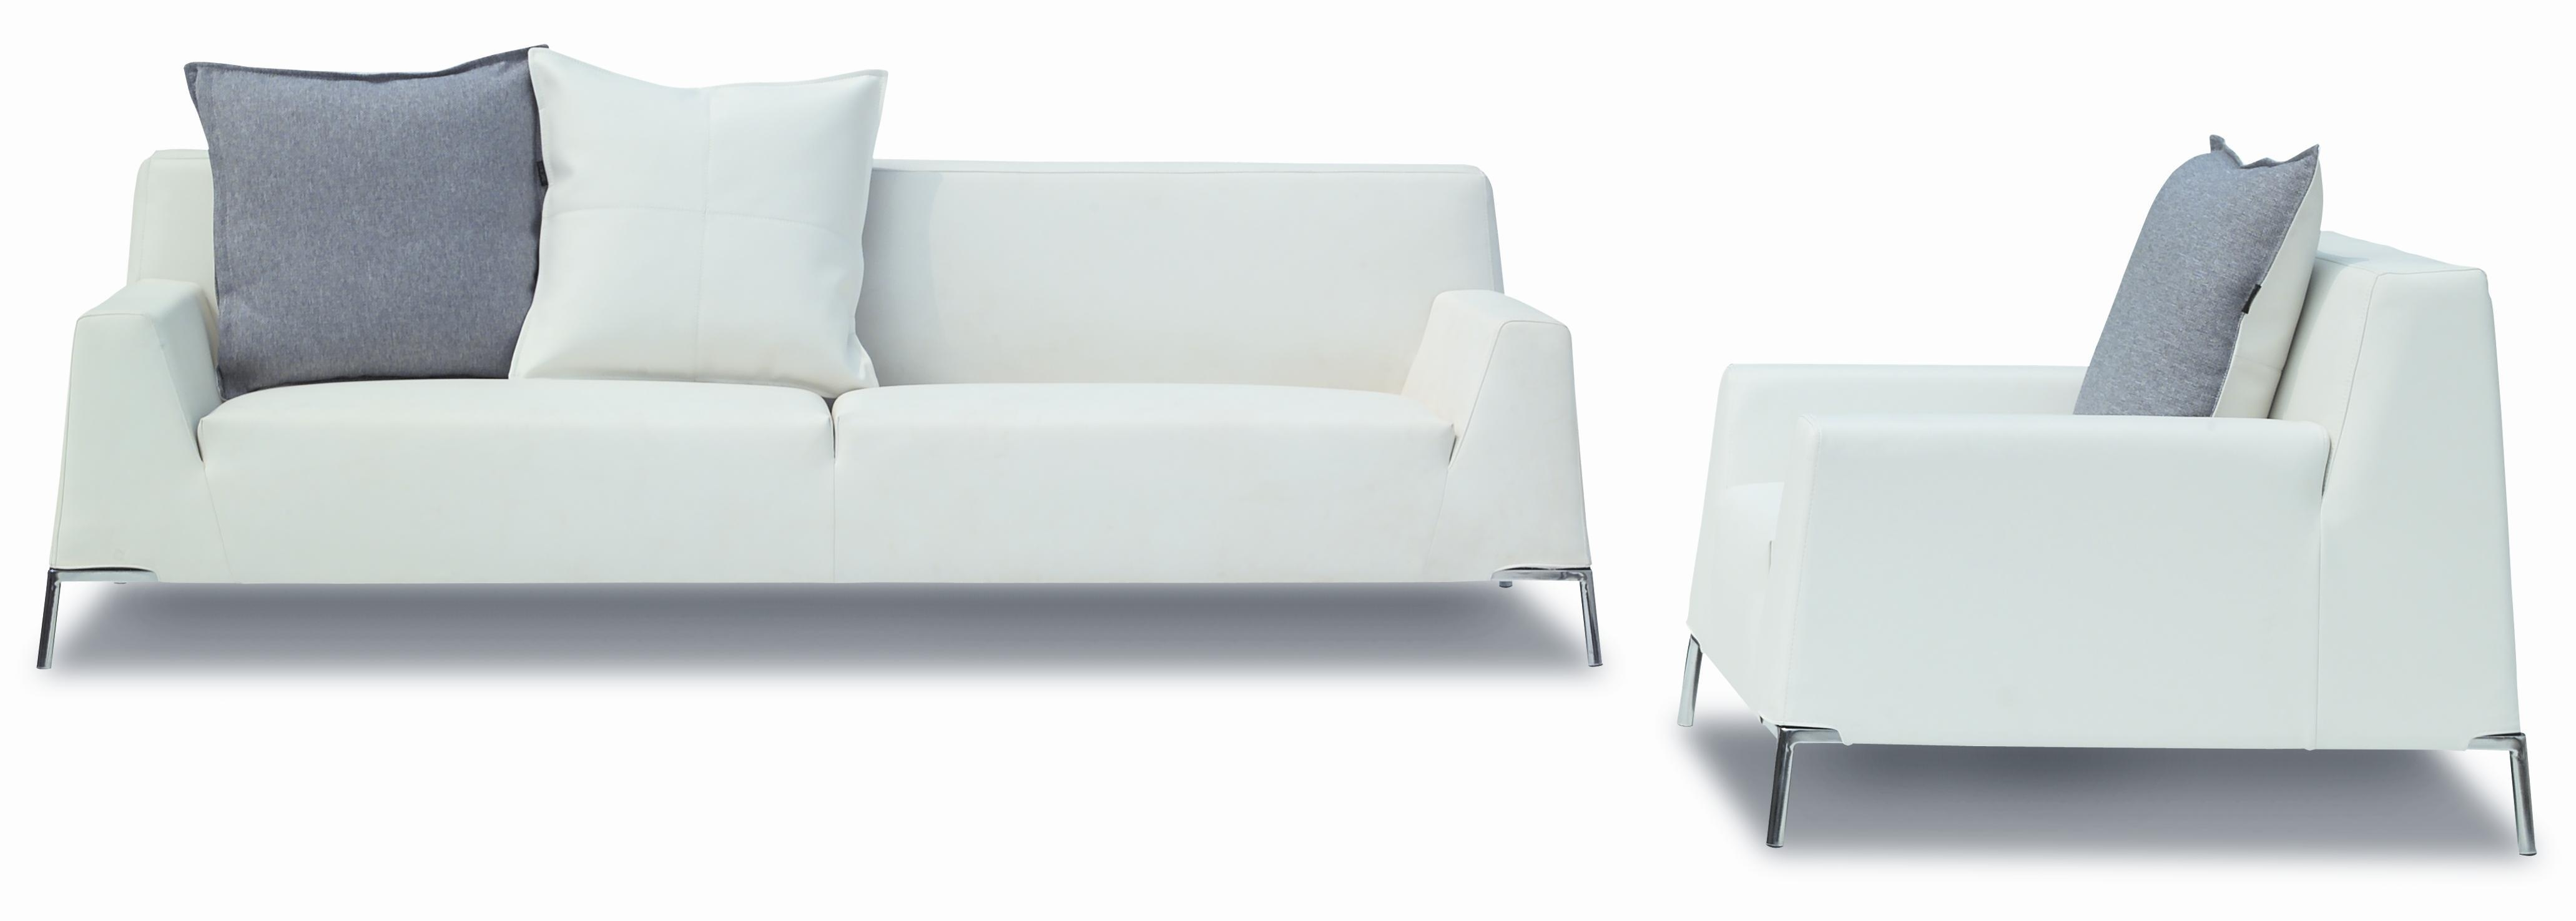 White Fabric Sofa 13 With White Fabric Sofa | Jinanhongyu With Regard To White Fabric Sofas (Image 19 of 20)